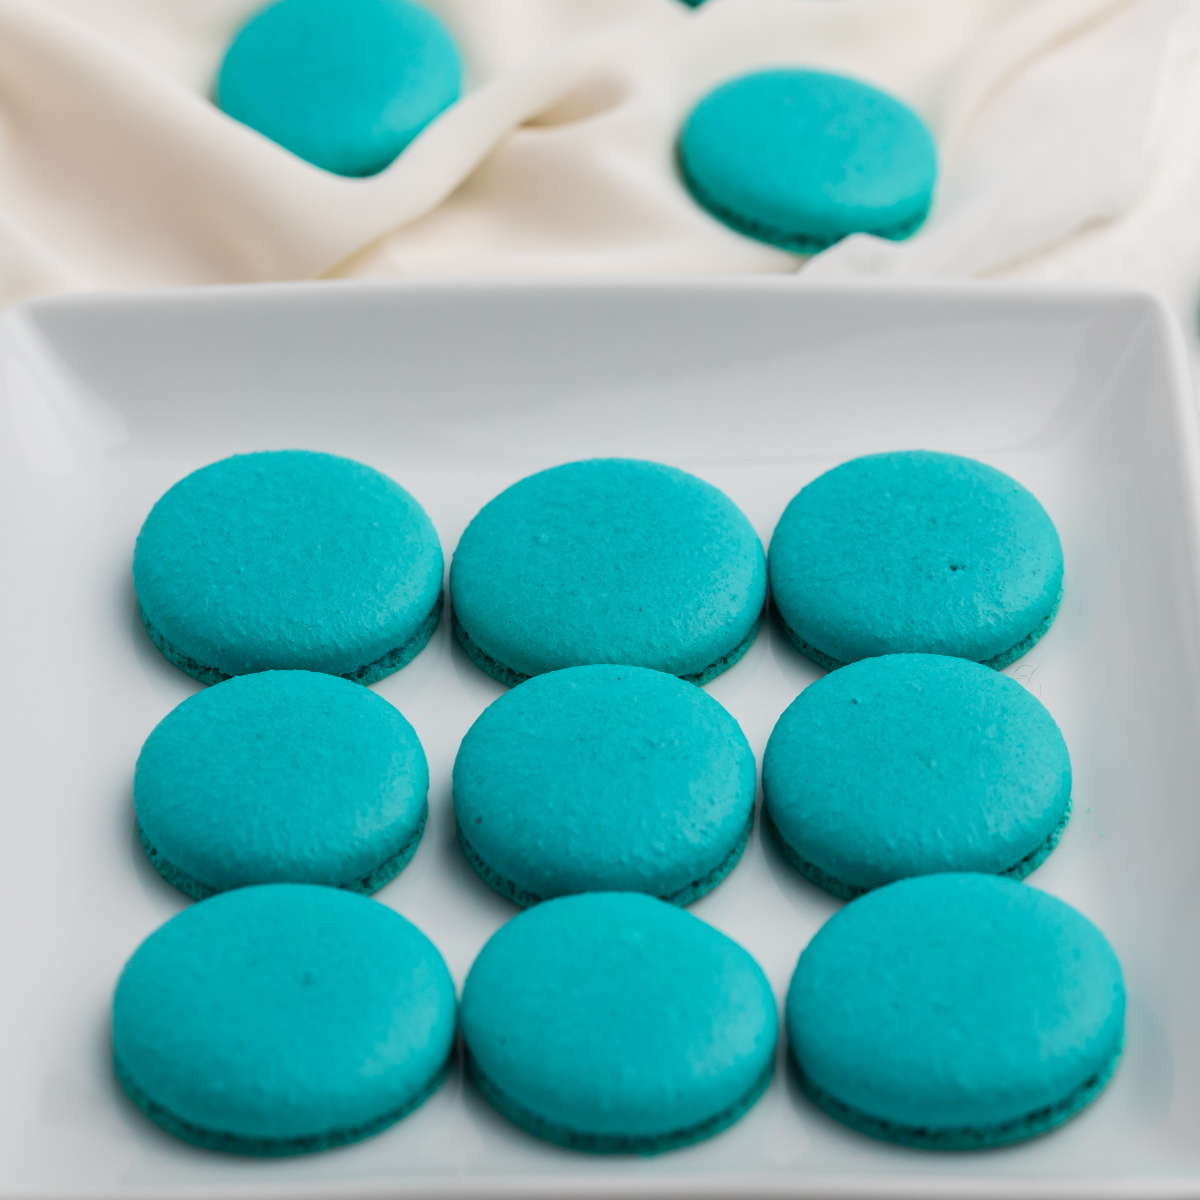 Blue Macaron cookies on a white plate.